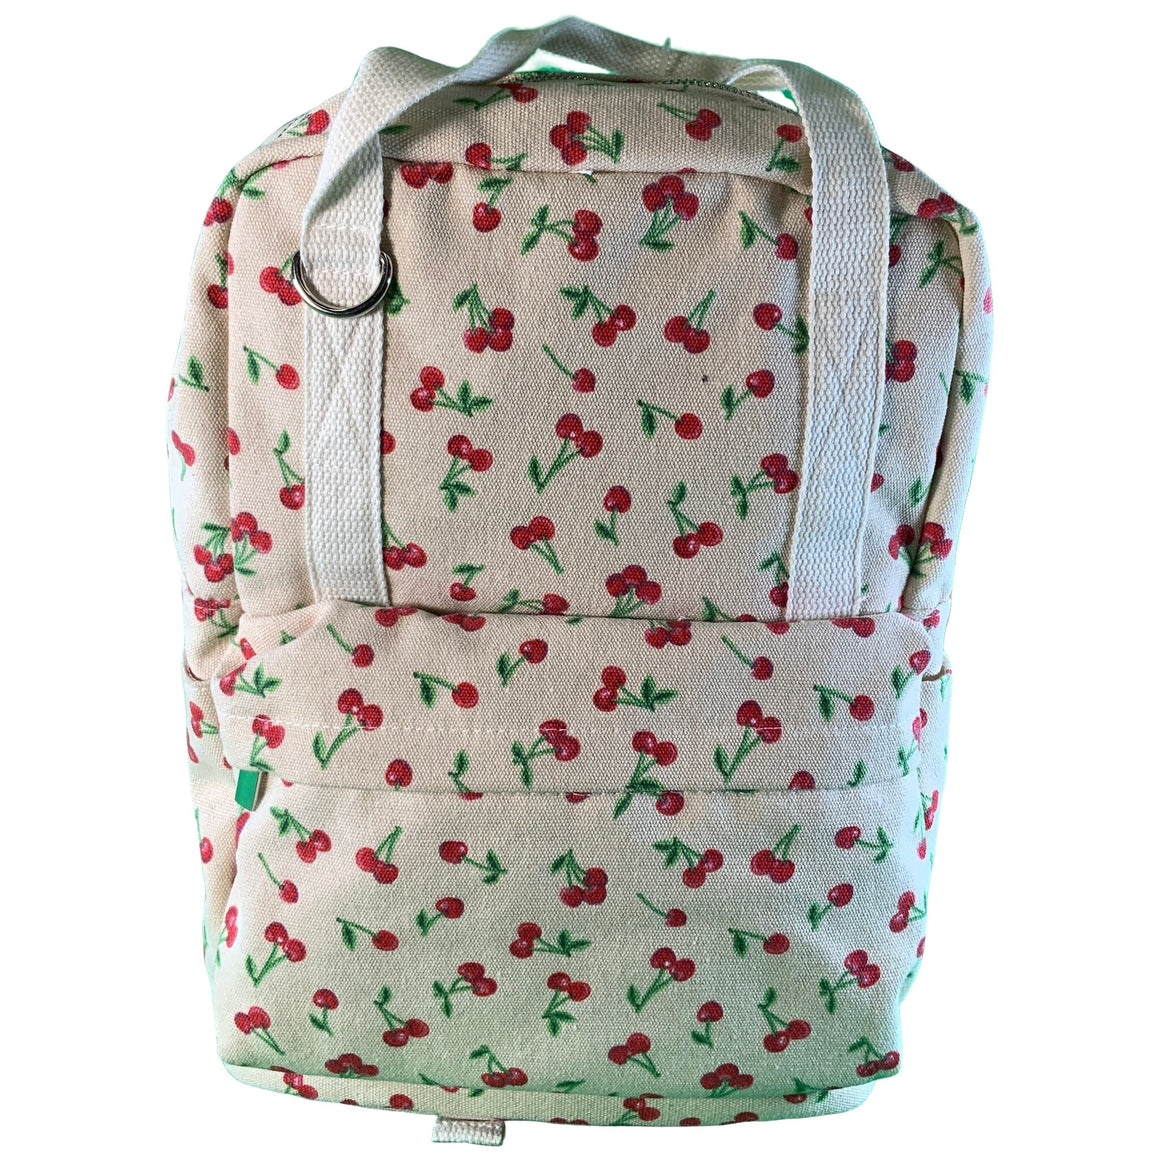 Cherry Print Canvas Square Backpack - Cream - Wild Fable™